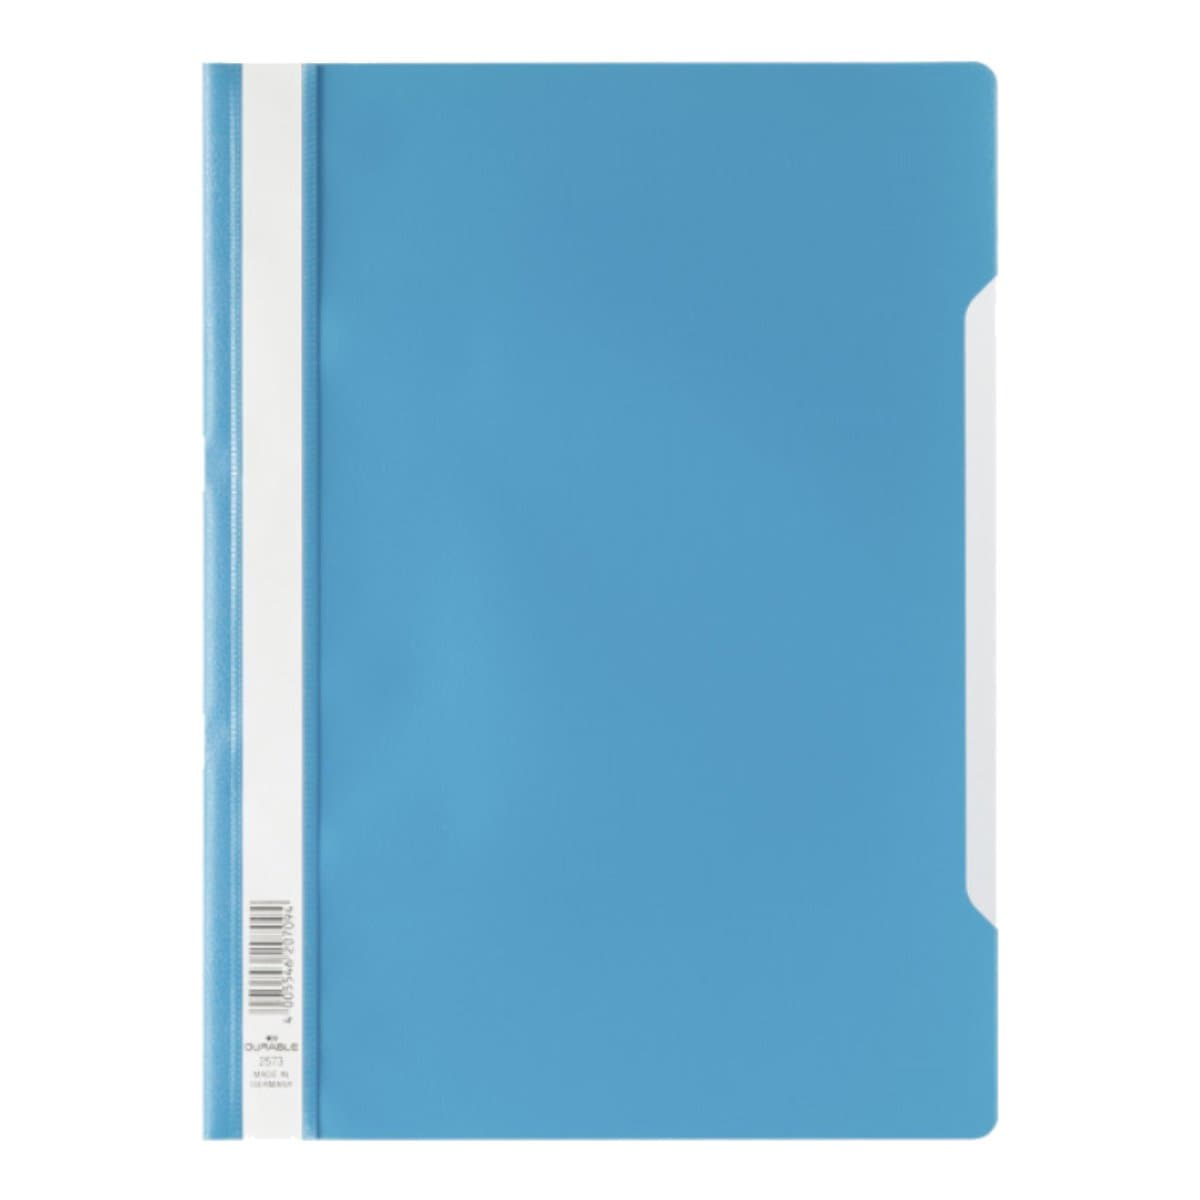 Durable Clear View Folder - Economy A4, Blue